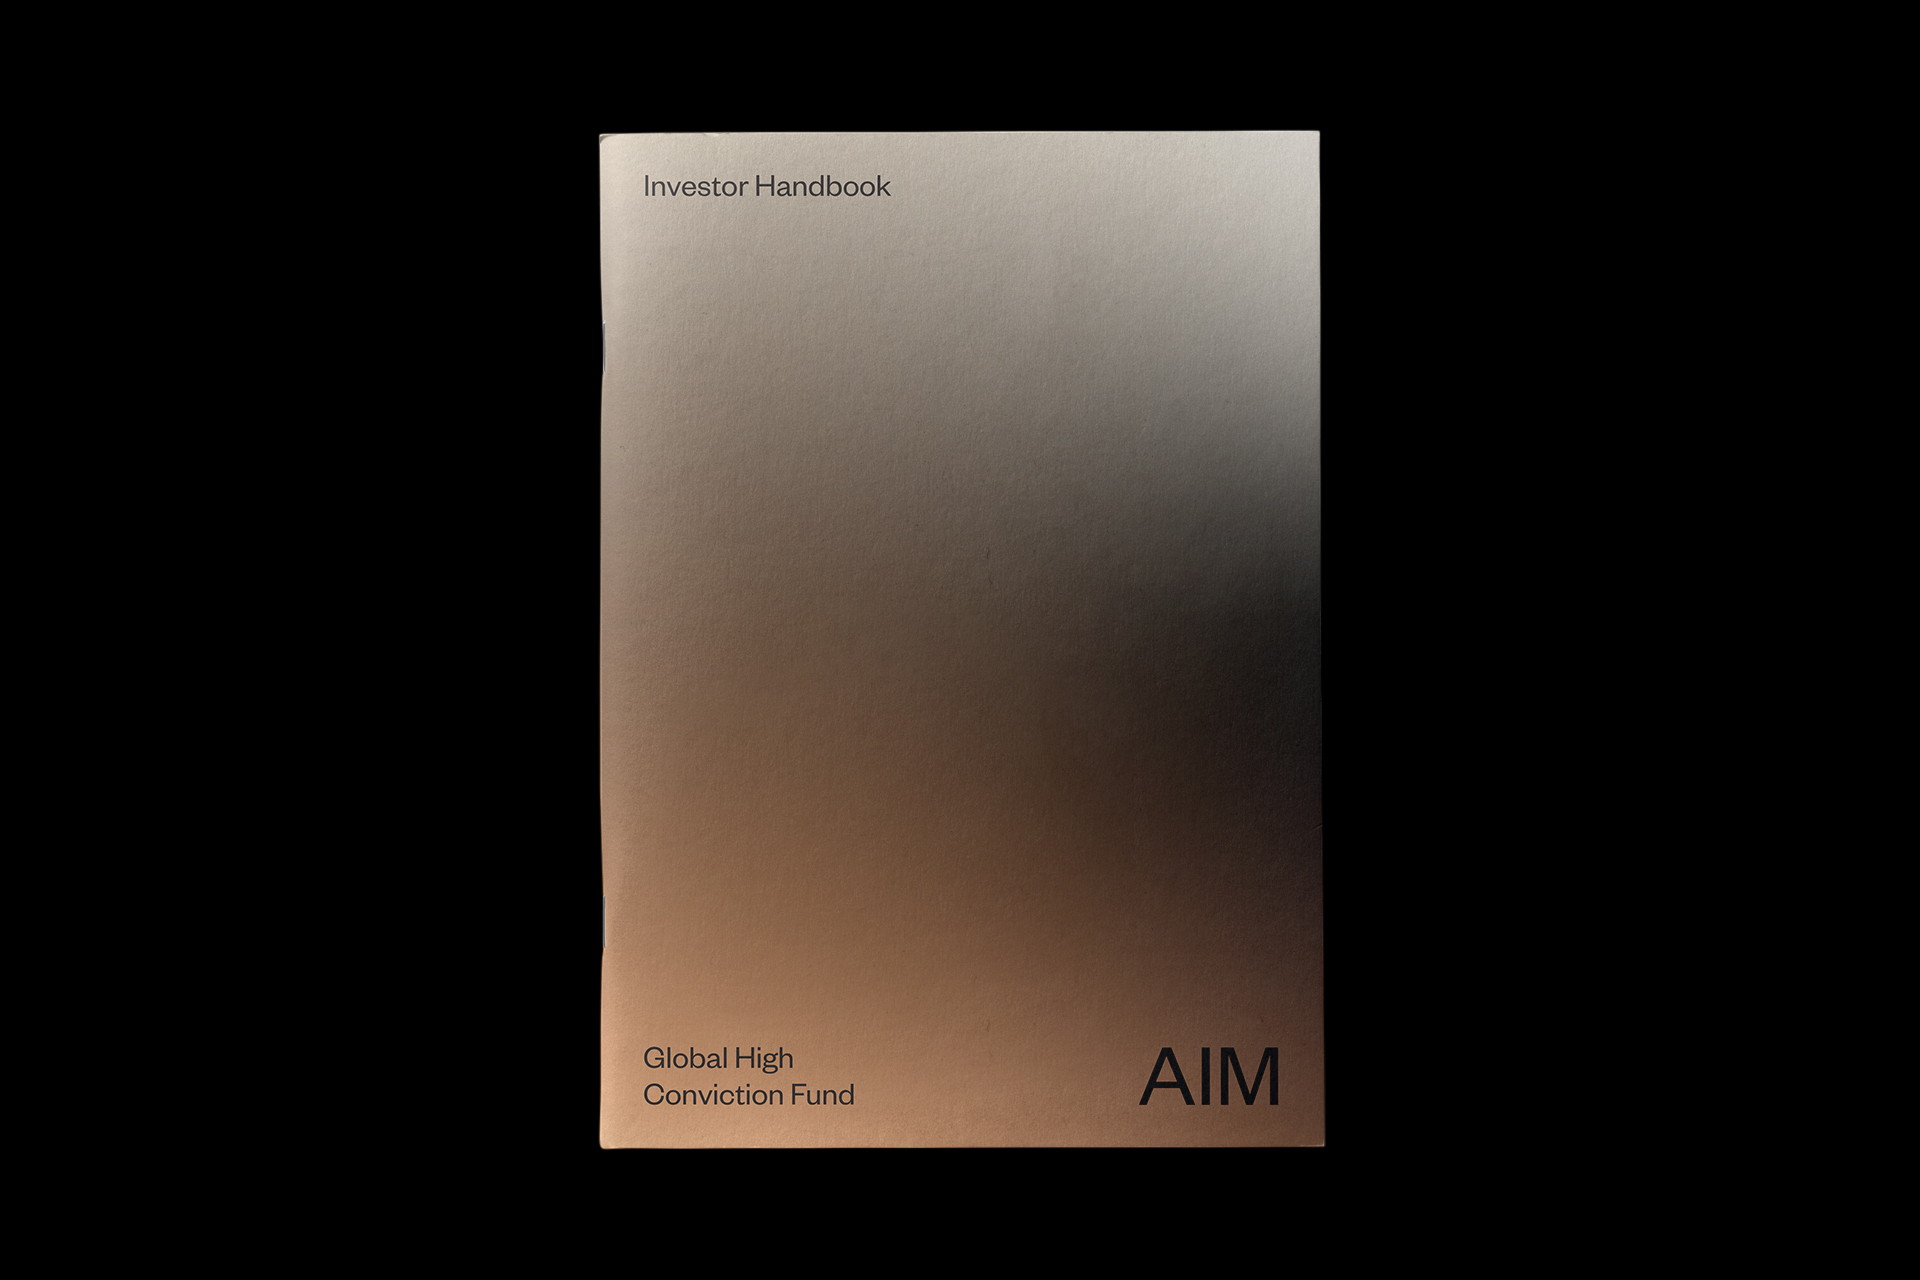 Nectar_2020_AIM_IH-Cover_v1